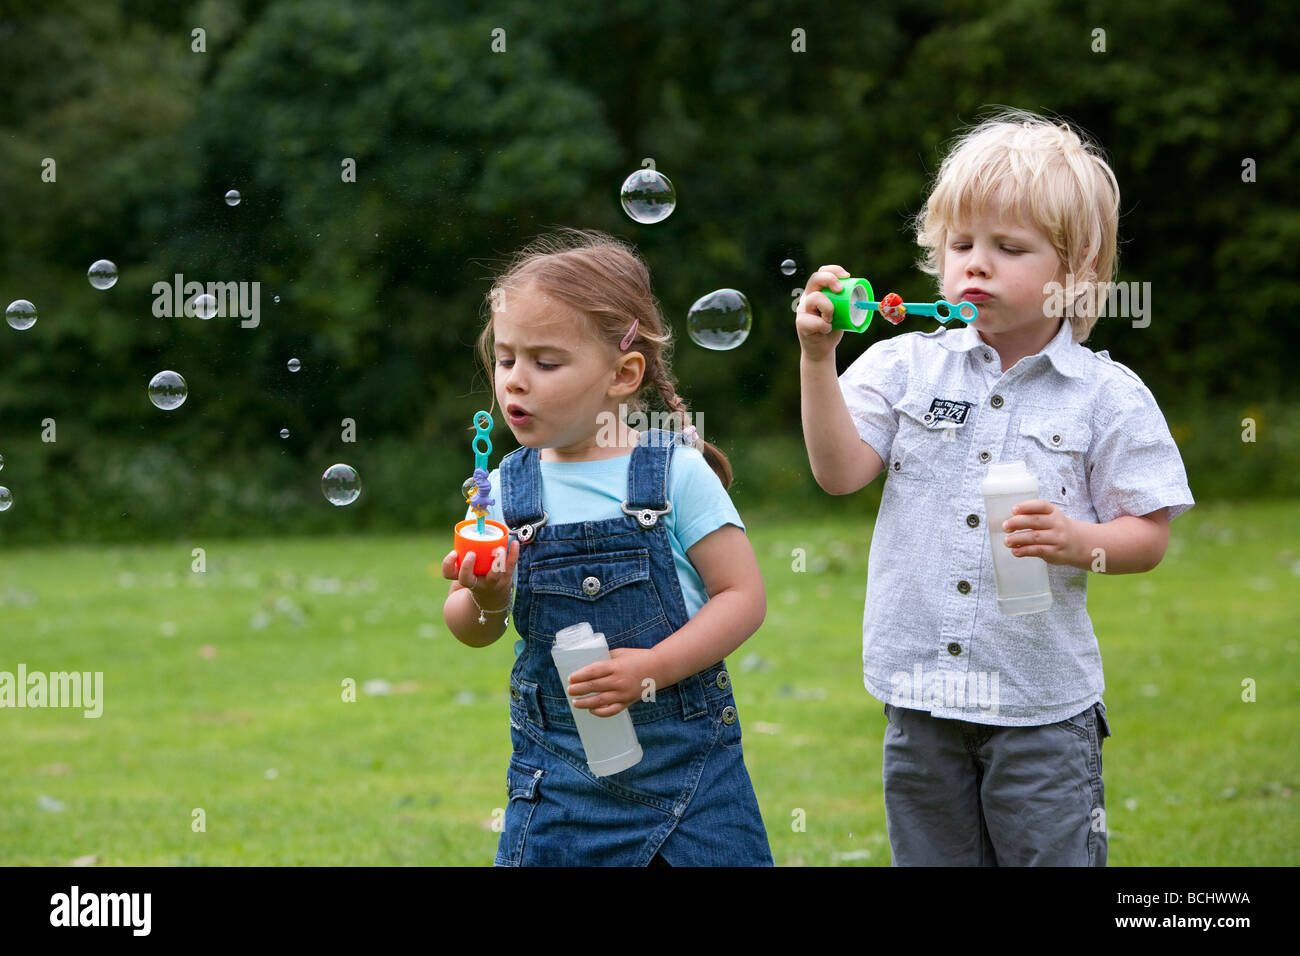 Two toddlers blowing bubbles - Stock Image